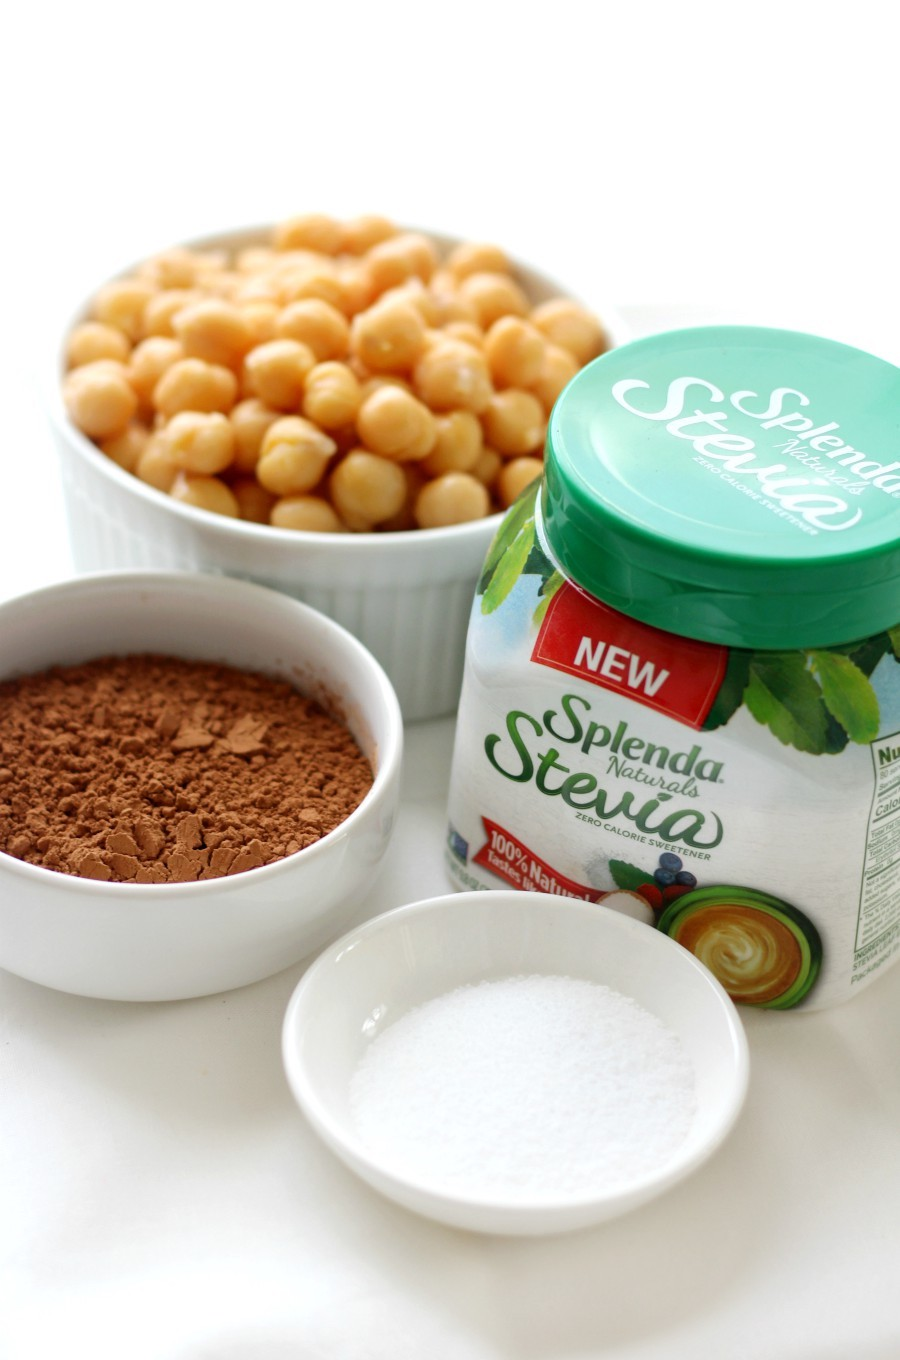 ingredients-for-crispy-cocoa-chickpeas